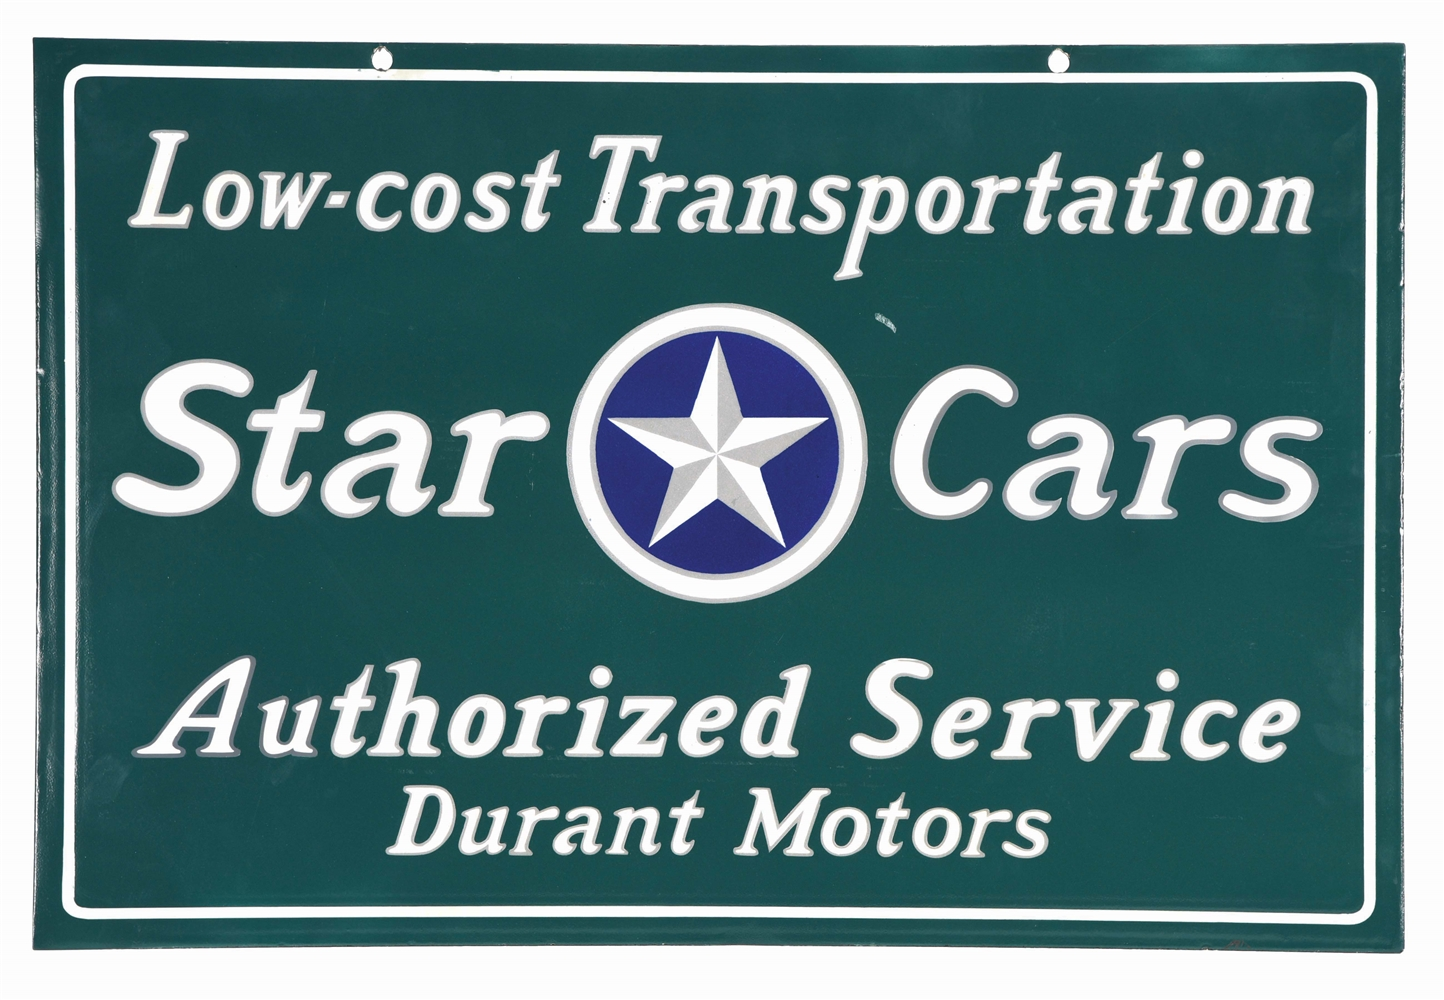 STAR CARS & DURANT MOTORS AUTHORIZED SERVICE SIGN.